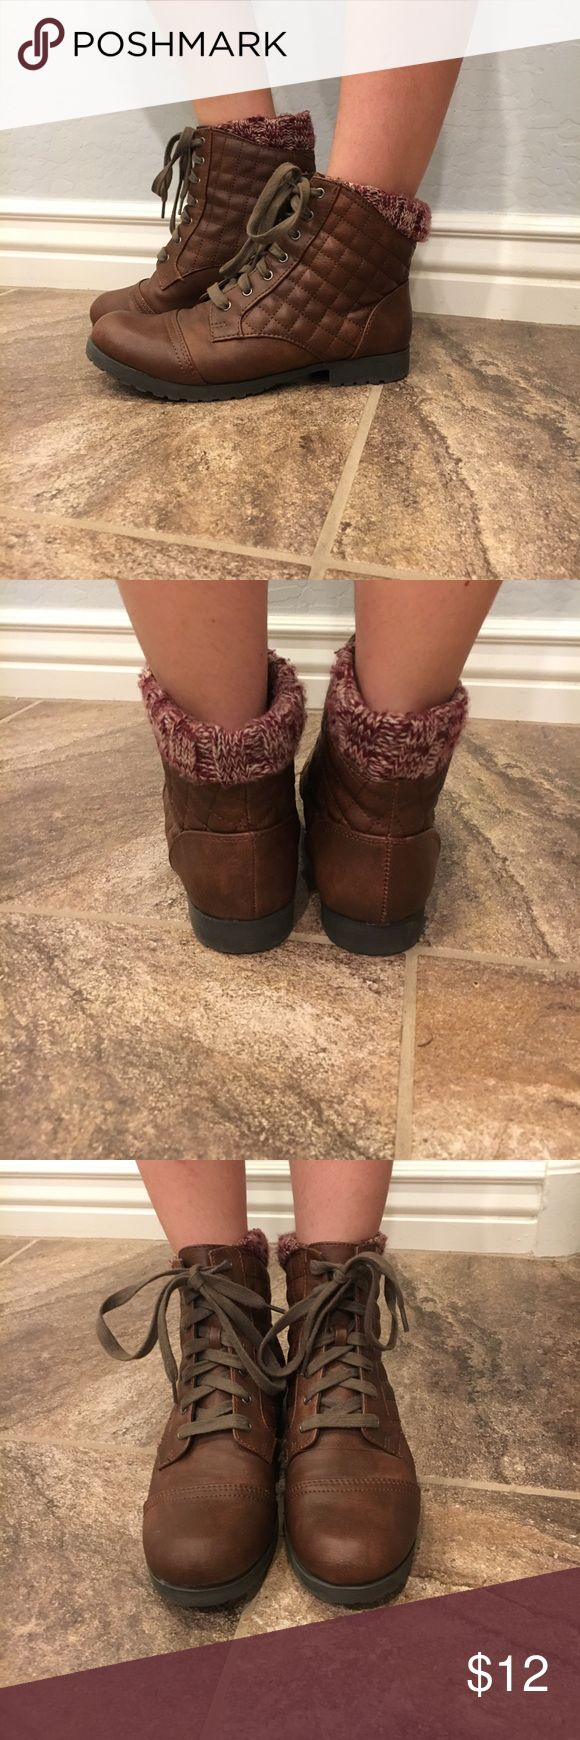 Booties Sweater cuff. Worn twice, amazing condition. Designed stitching Tilly's Shoes Ankle Boots & Booties